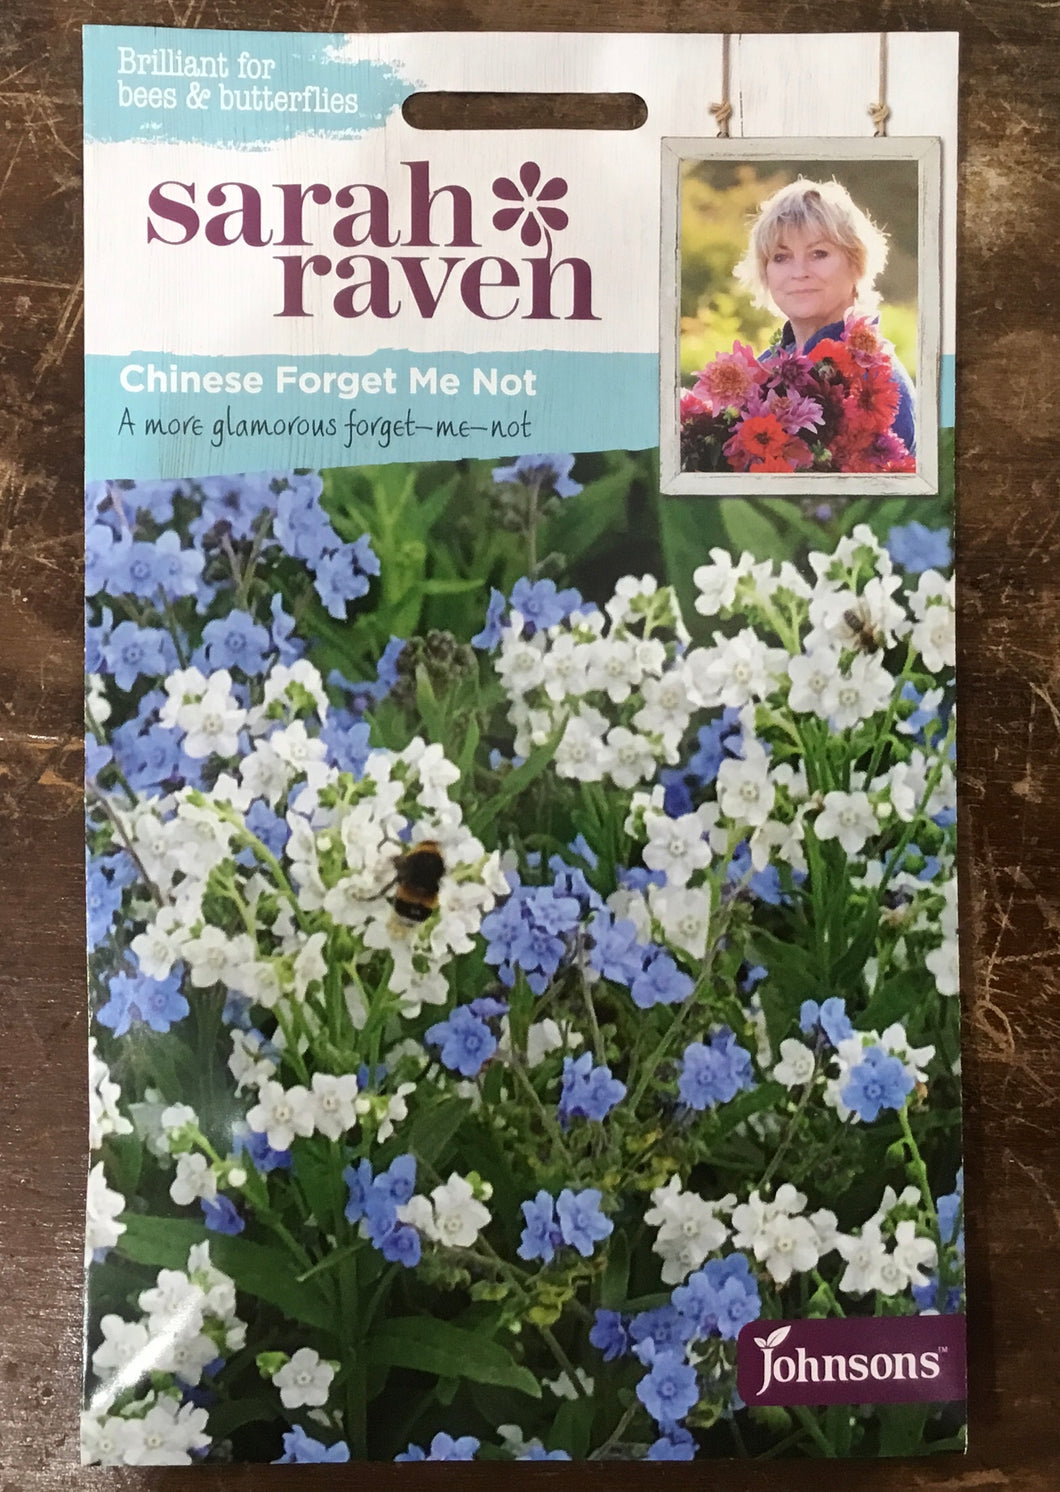 Chinese Forget Me Not - Sarah Ravens Flower Seeds